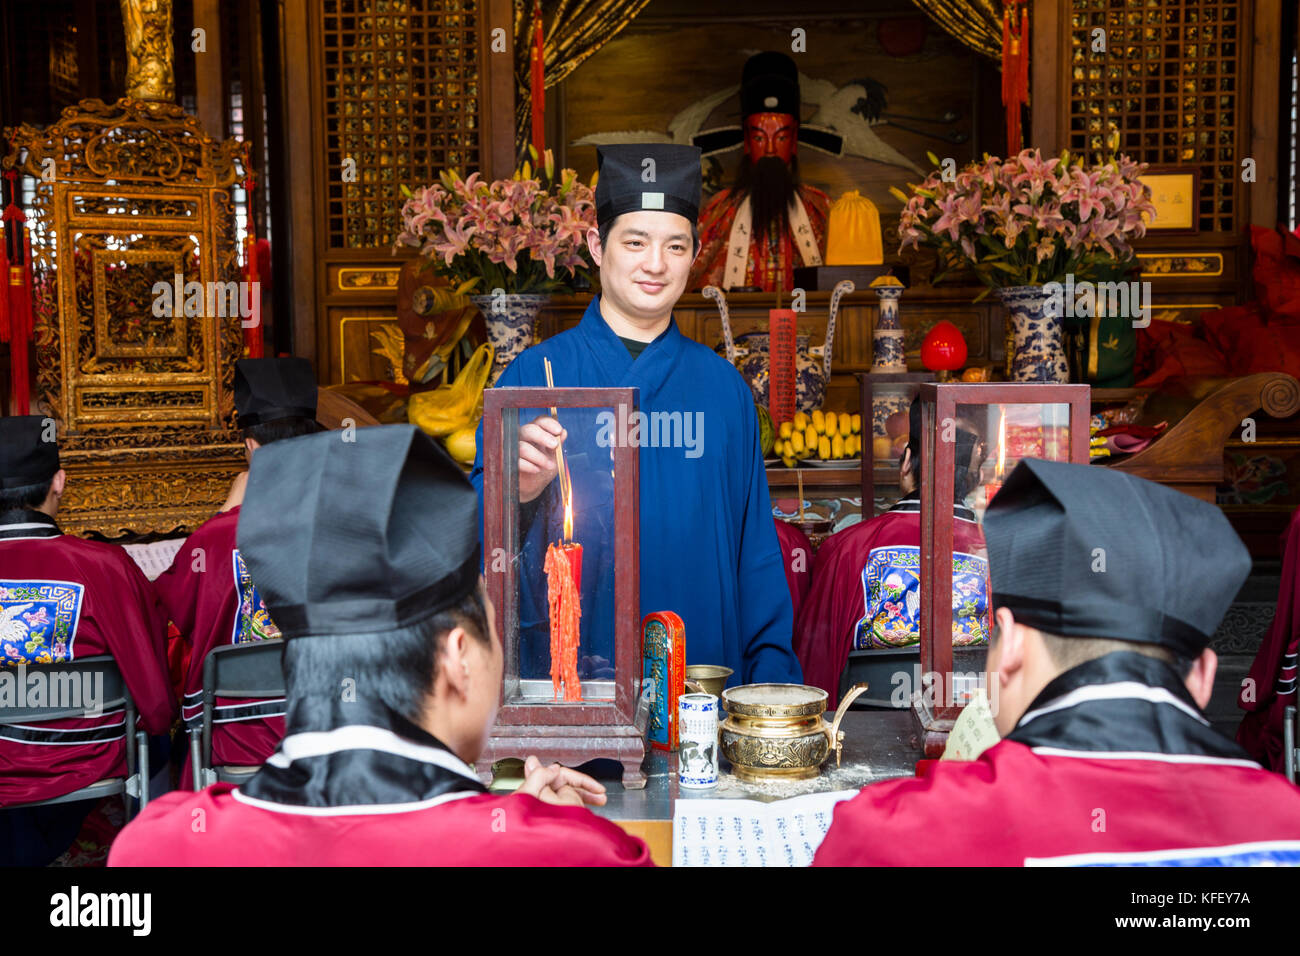 The monk lights a candle in one of the temple complexes in Shanghai city, China - Stock Image